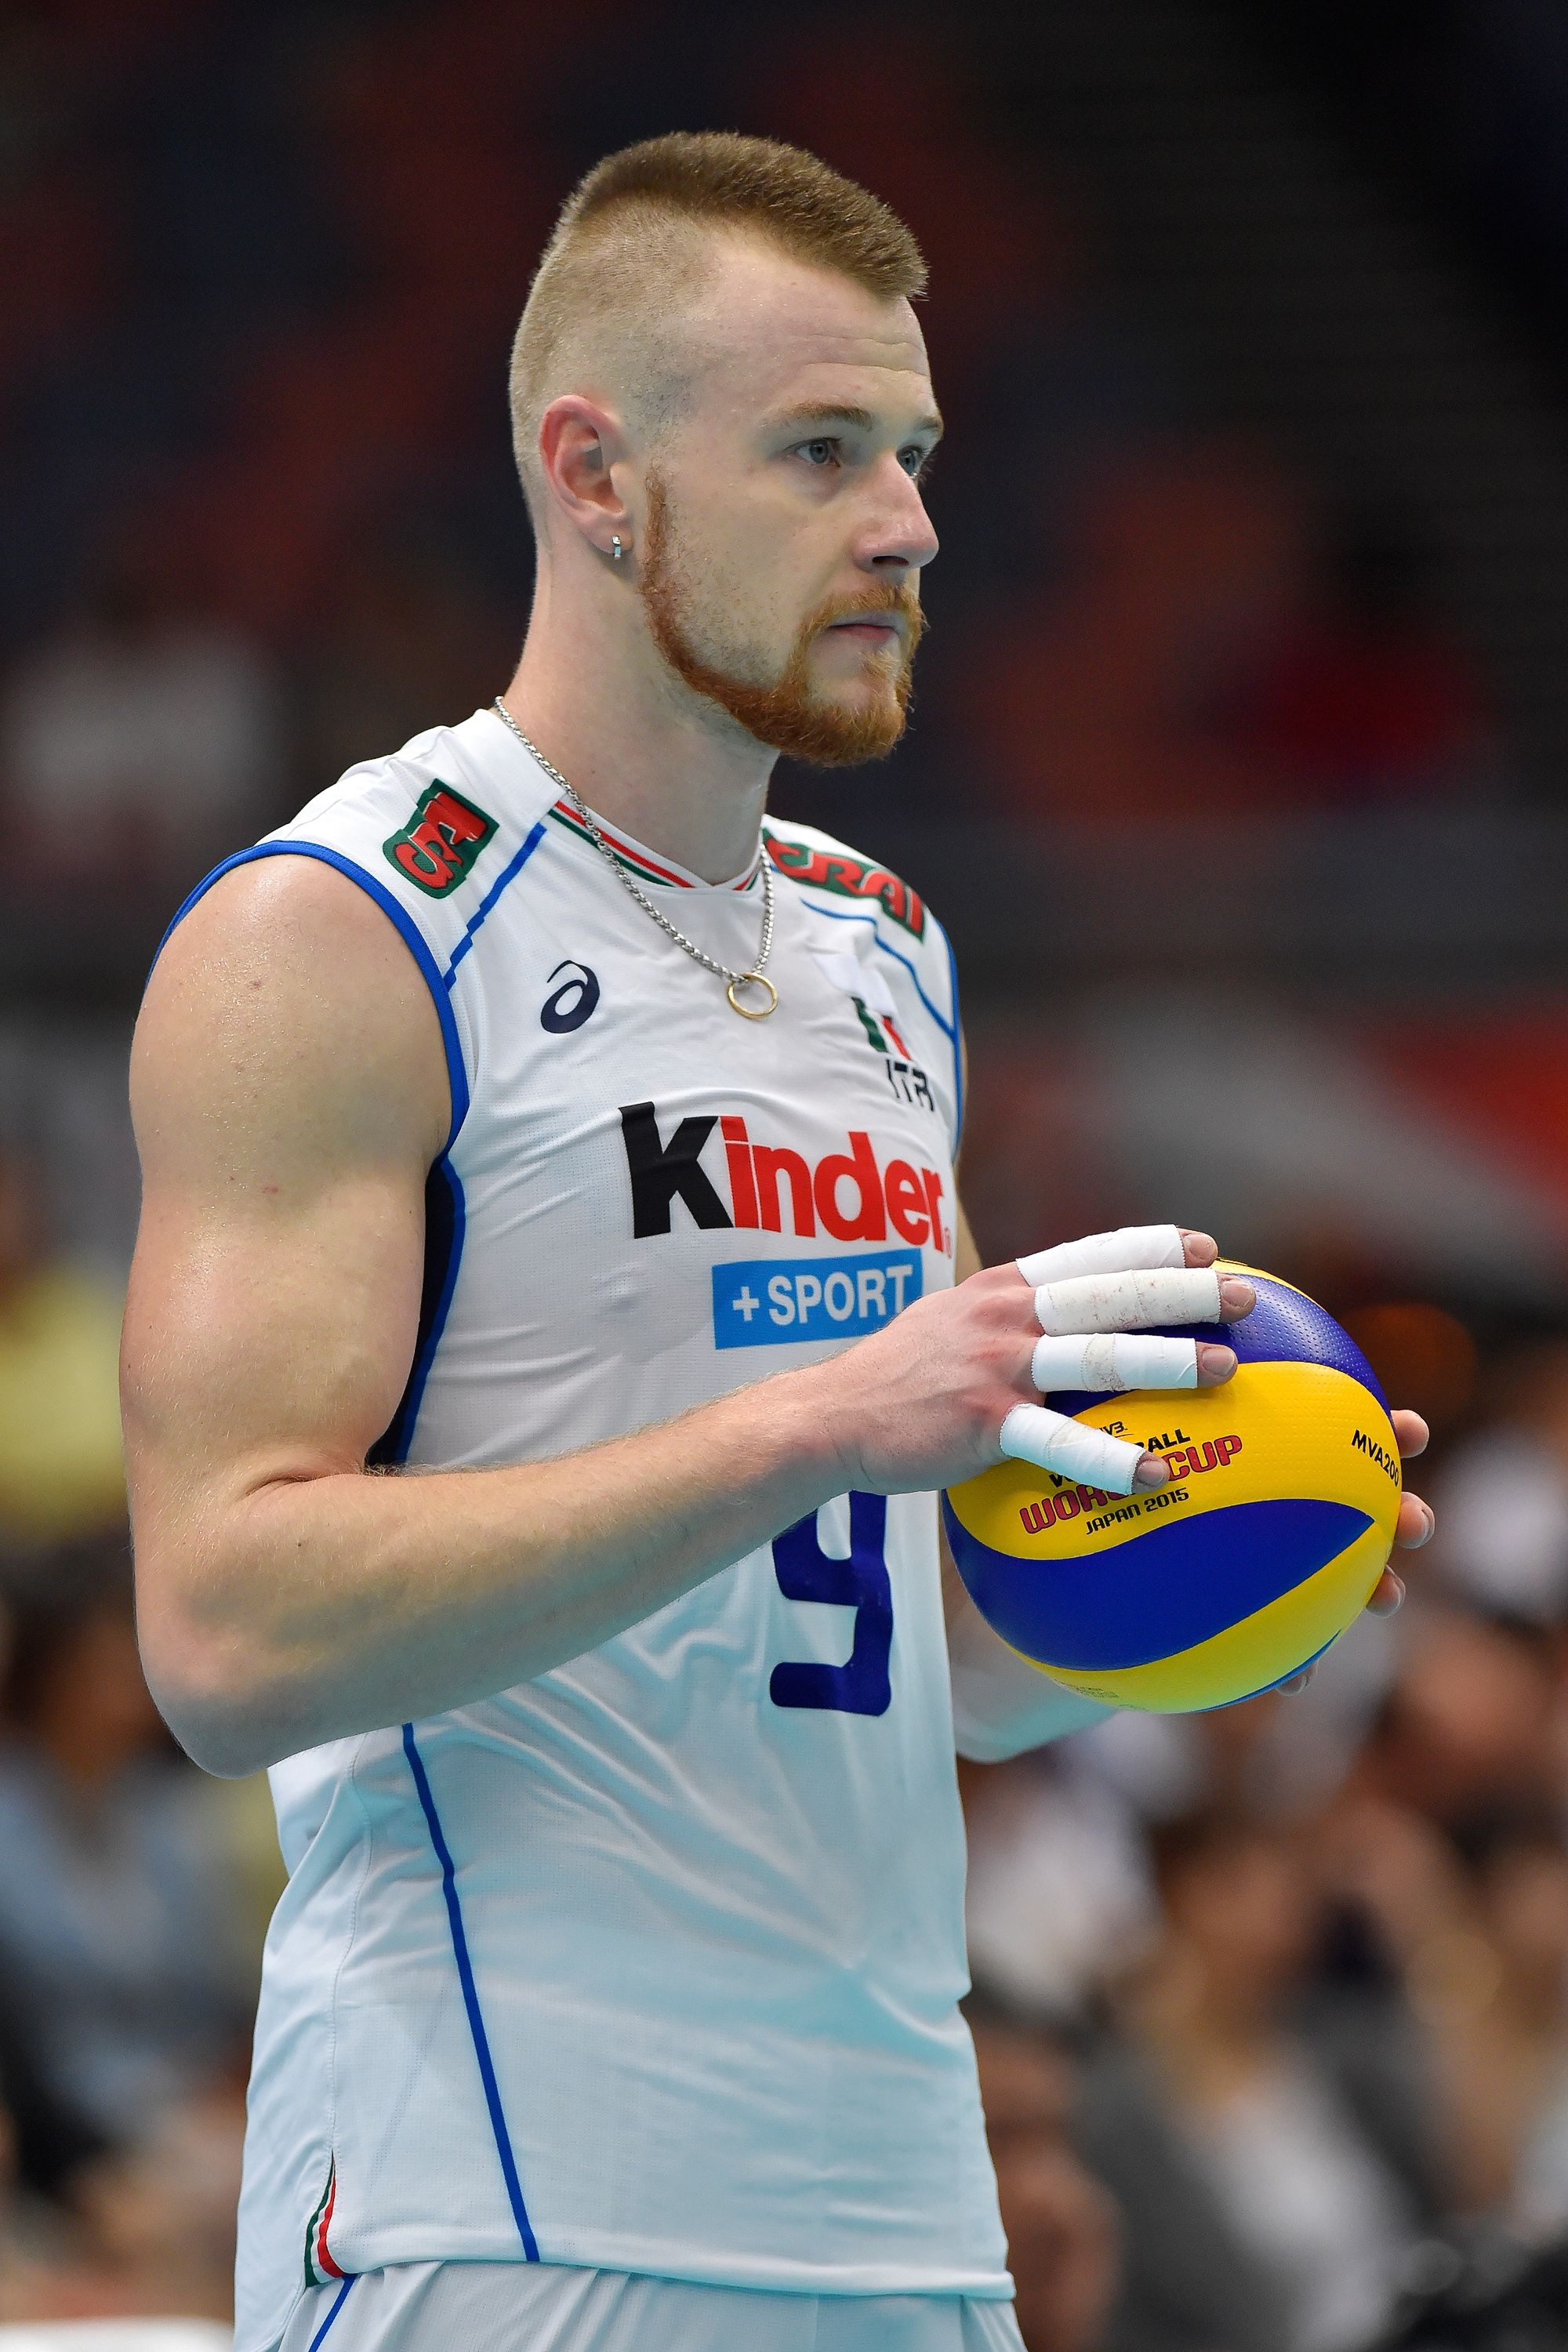 Look At Those Muscles Female Volleyball Players Mens Volleyball Volleyball Images